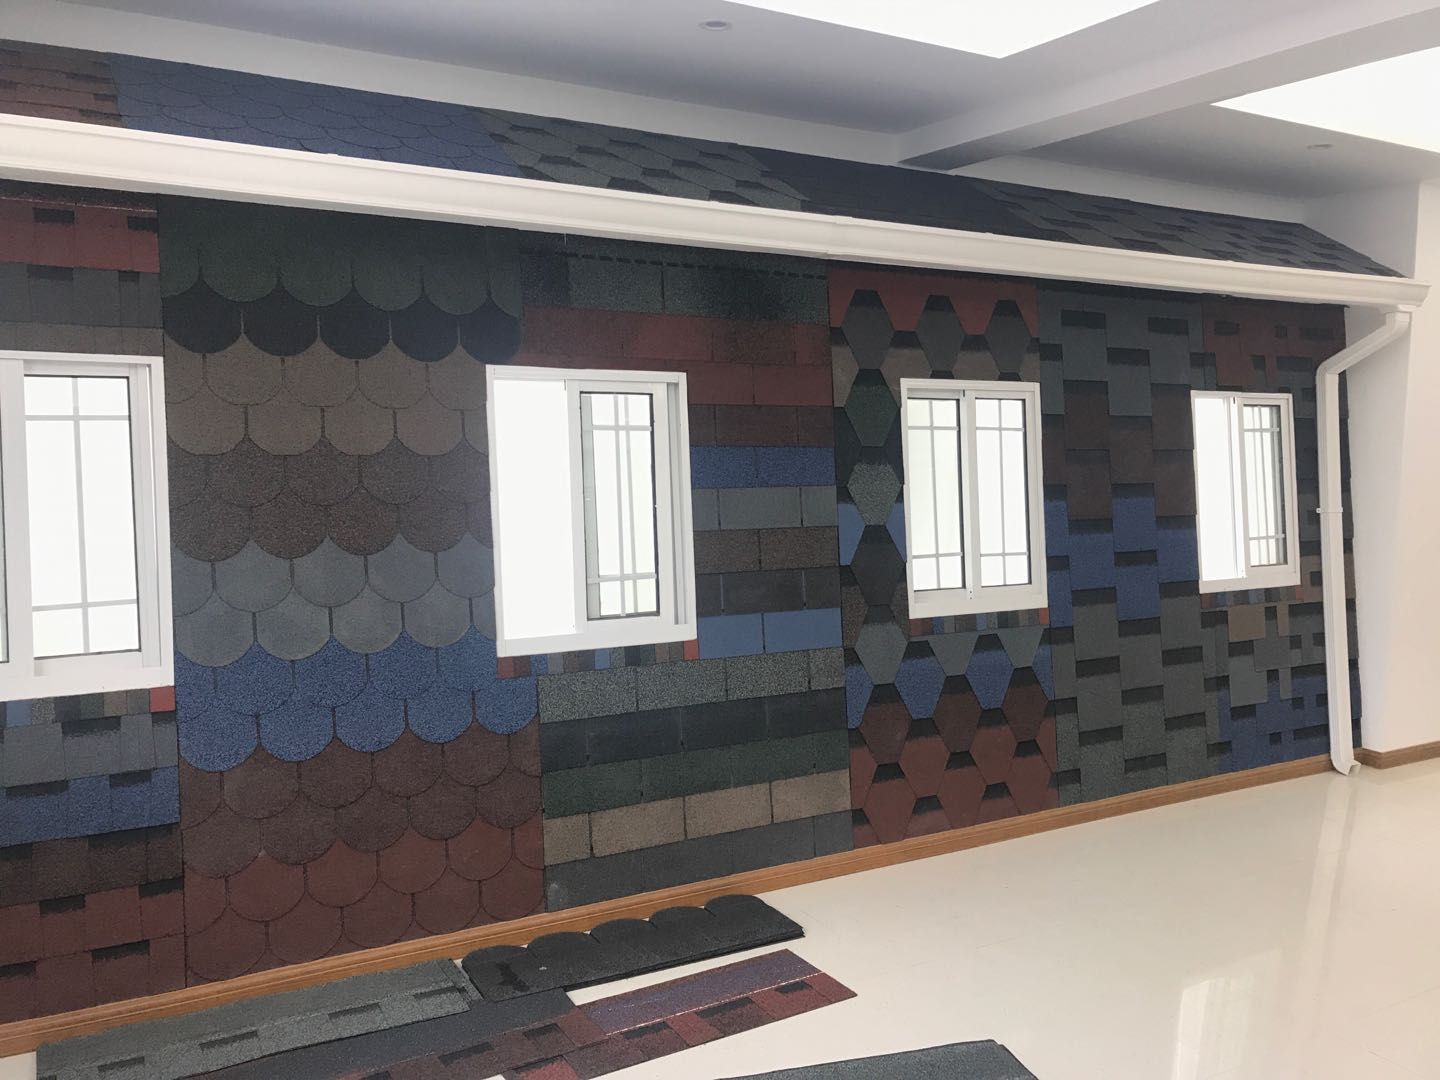 Buy Roofing Shingles From Sangobuild Factory Roofing Shingles Prices Per Bundle From Factory In 2020 Roof Shingles Roofing Shingling